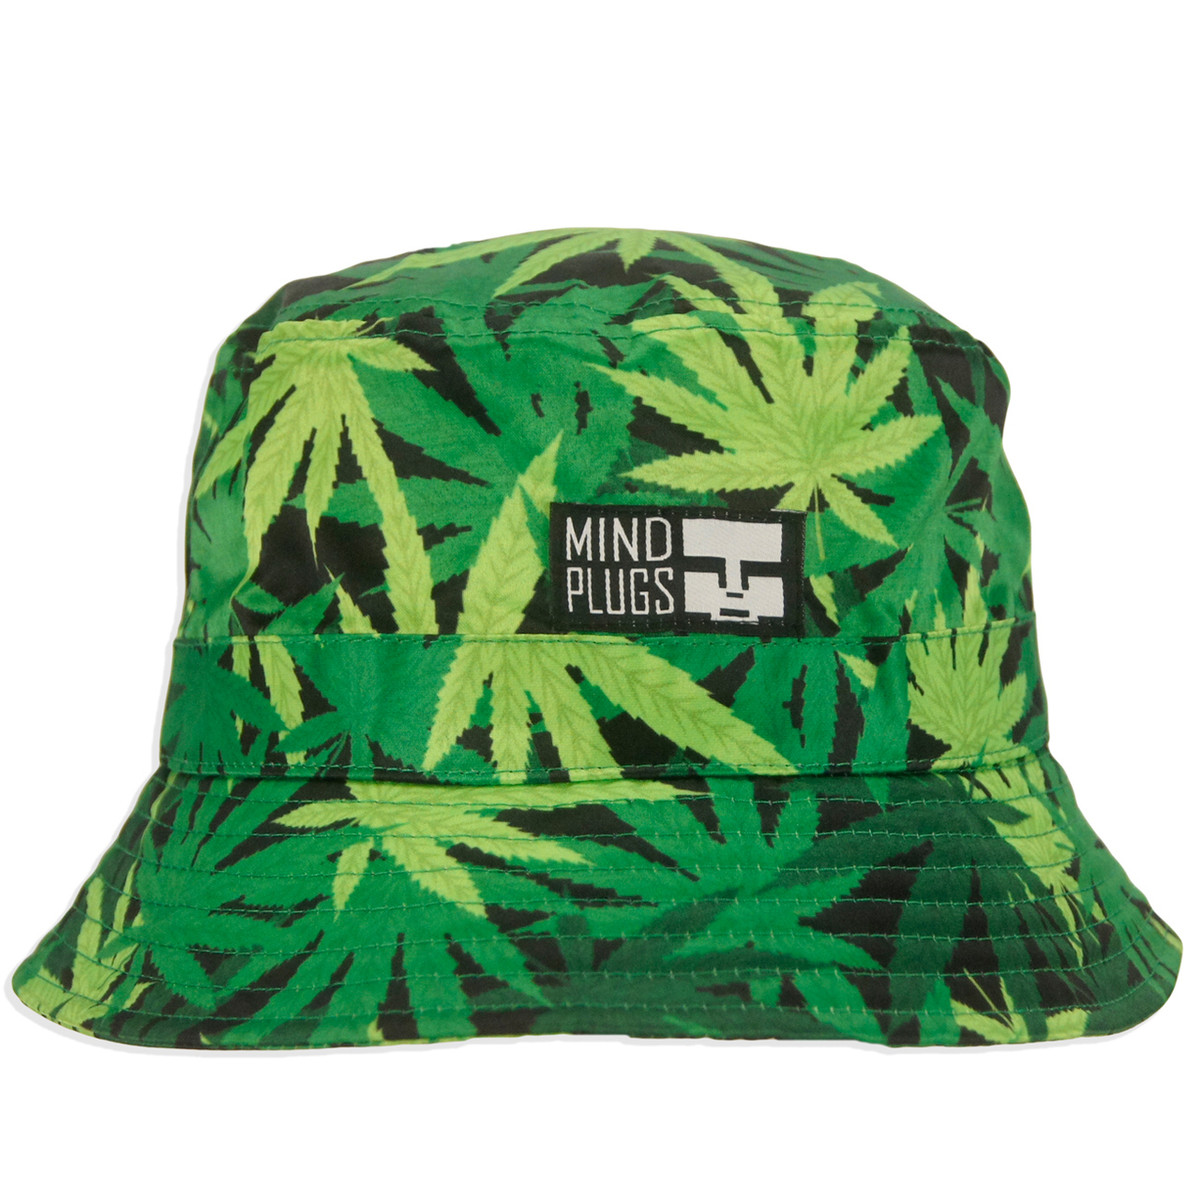 c32e605cfe6 Ganja Leaf All Over Graphic With A Soft Cotton Lining For Comfort